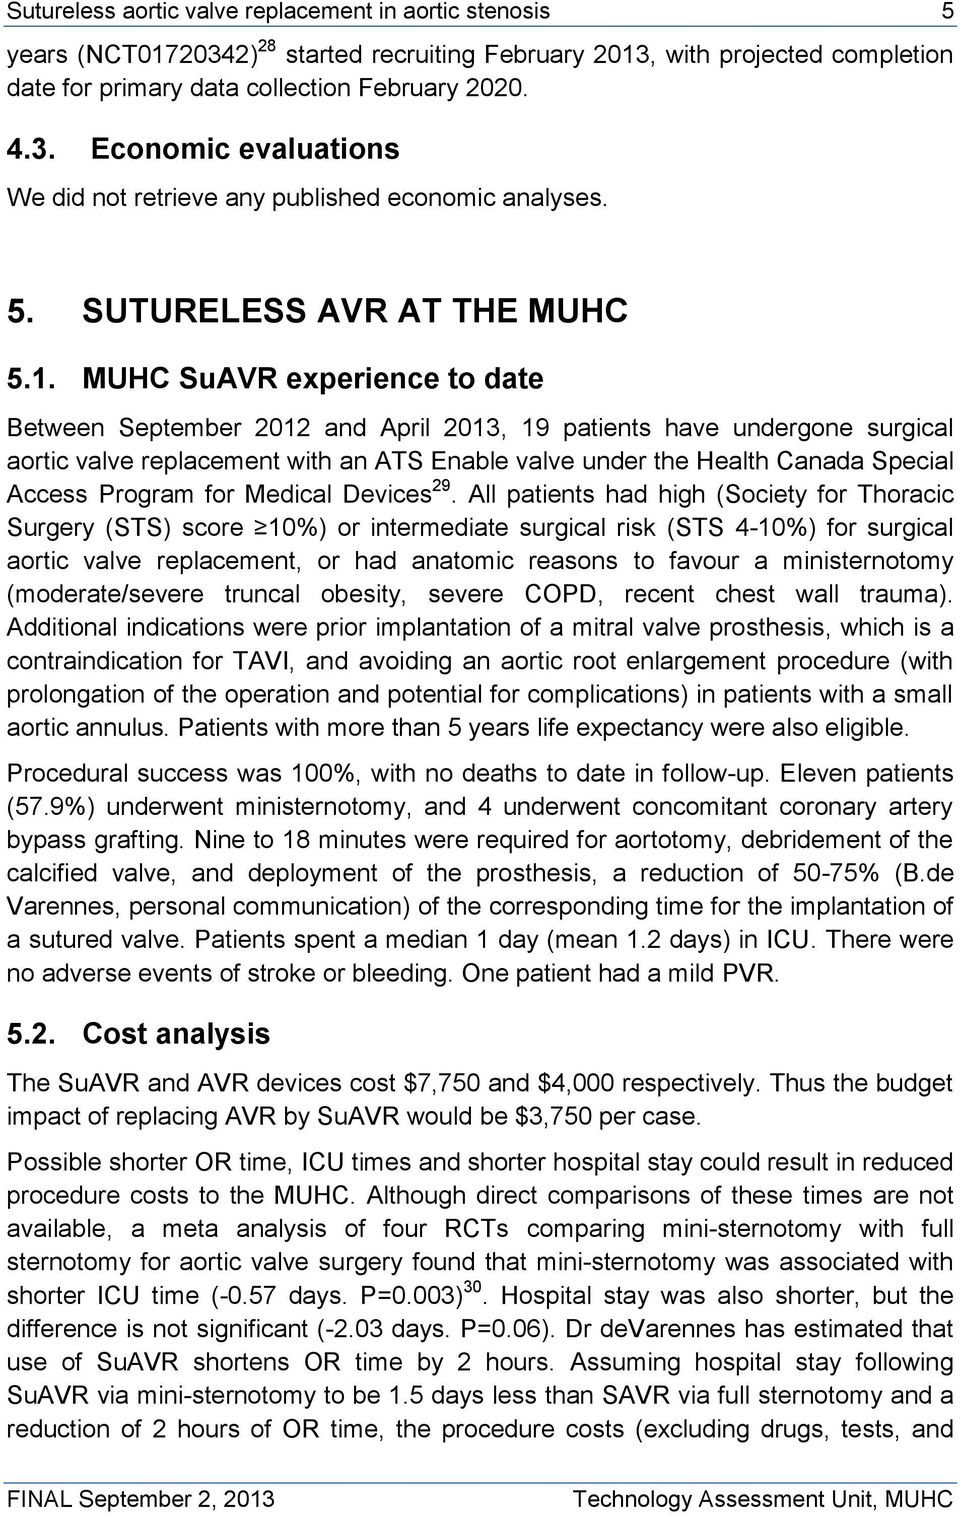 MUHC SuAVR experience to date Between September 2012 and April 2013, 19 patients have undergone surgical aortic valve replacement with an ATS Enable valve under the Health Canada Special Access